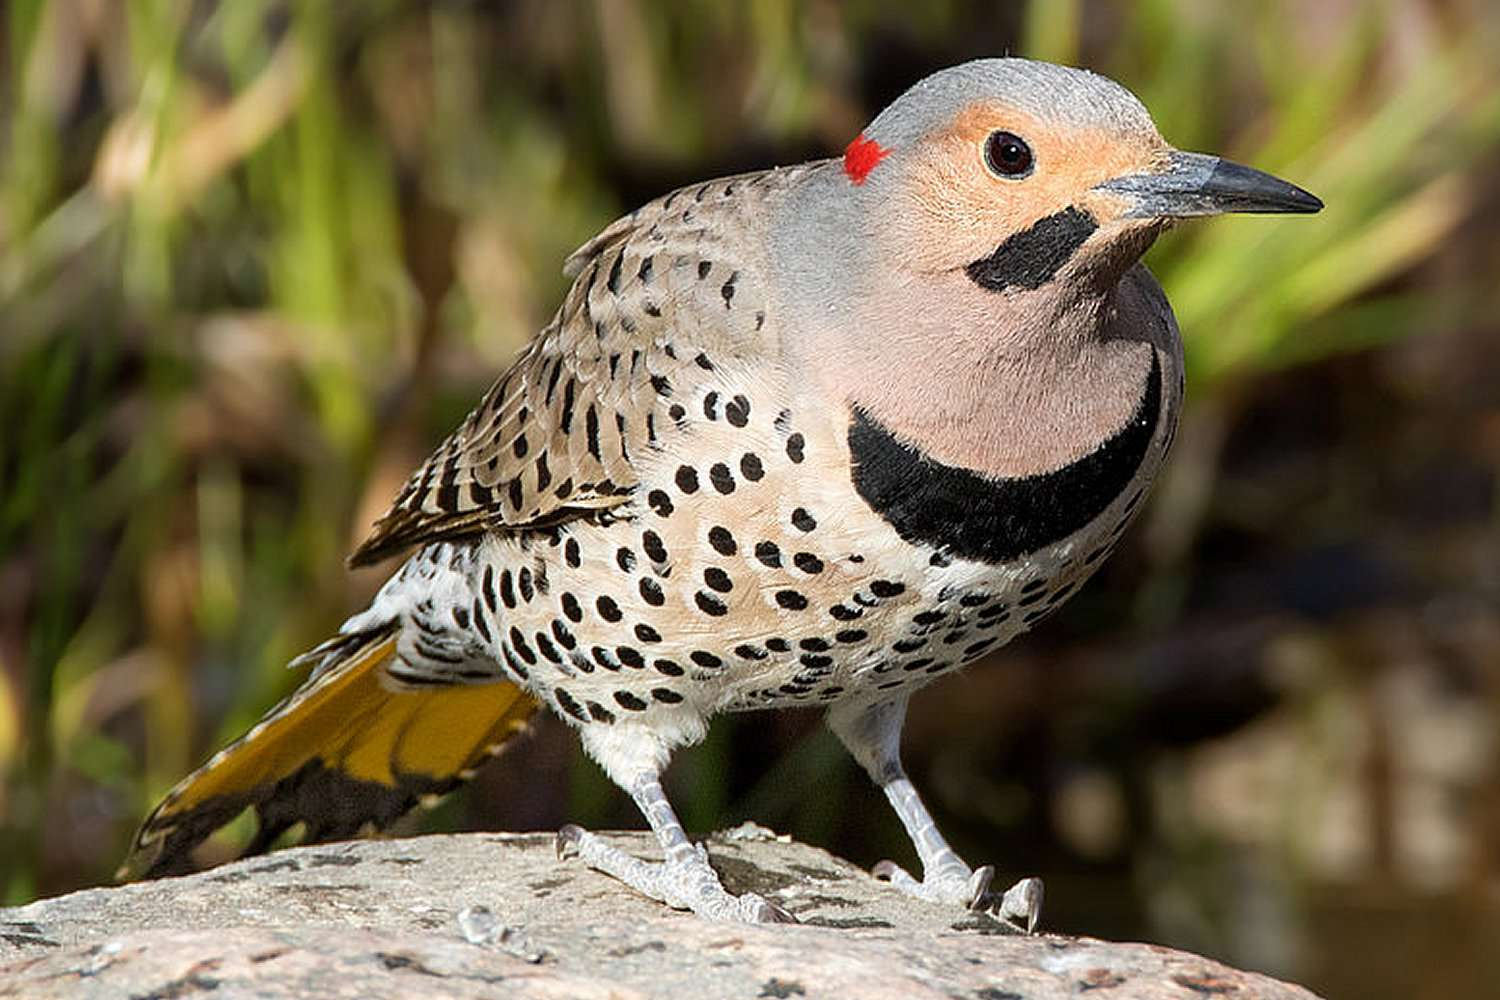 Northern Flicker, the state bird of Alabama, standing on a ledge.